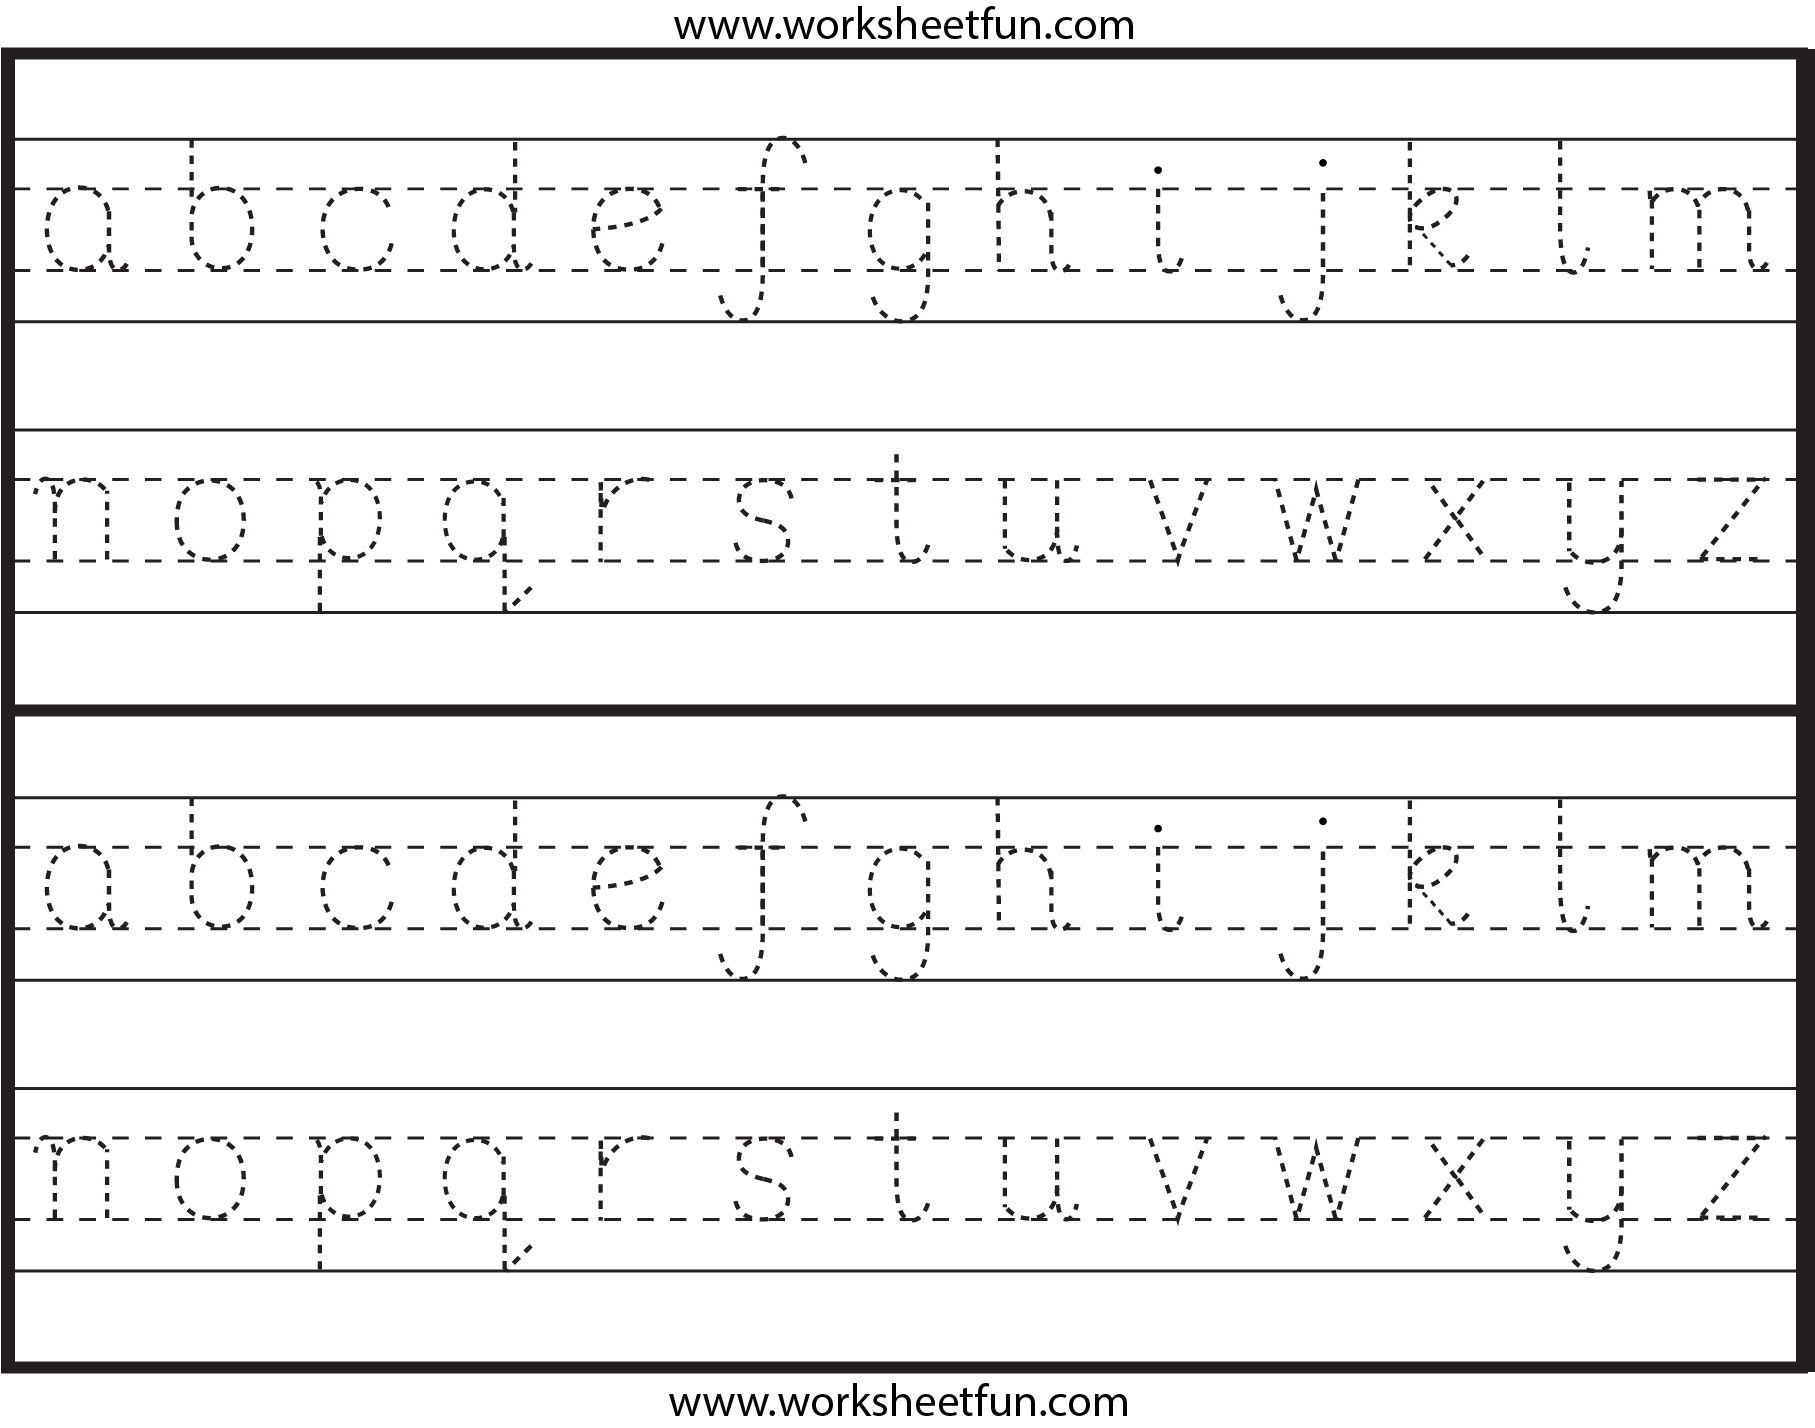 Preschool Worksheets Lowercase Letters - Worksheet Printable